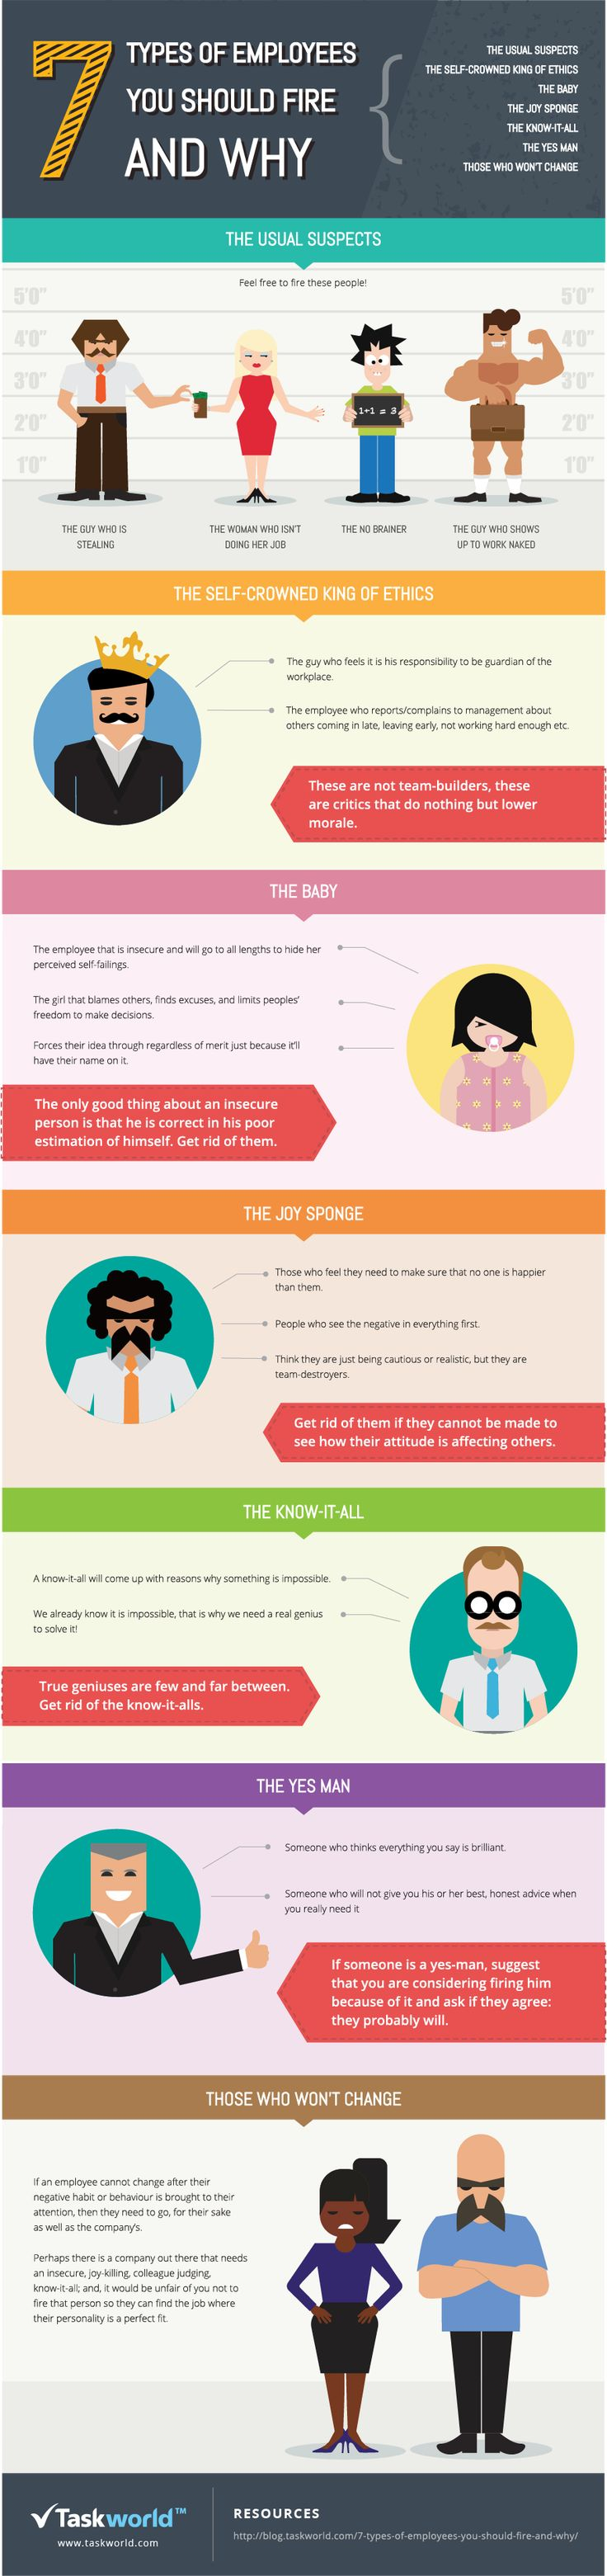 7 Types Of Employees You Should Fire   #infographic #Employees #Business